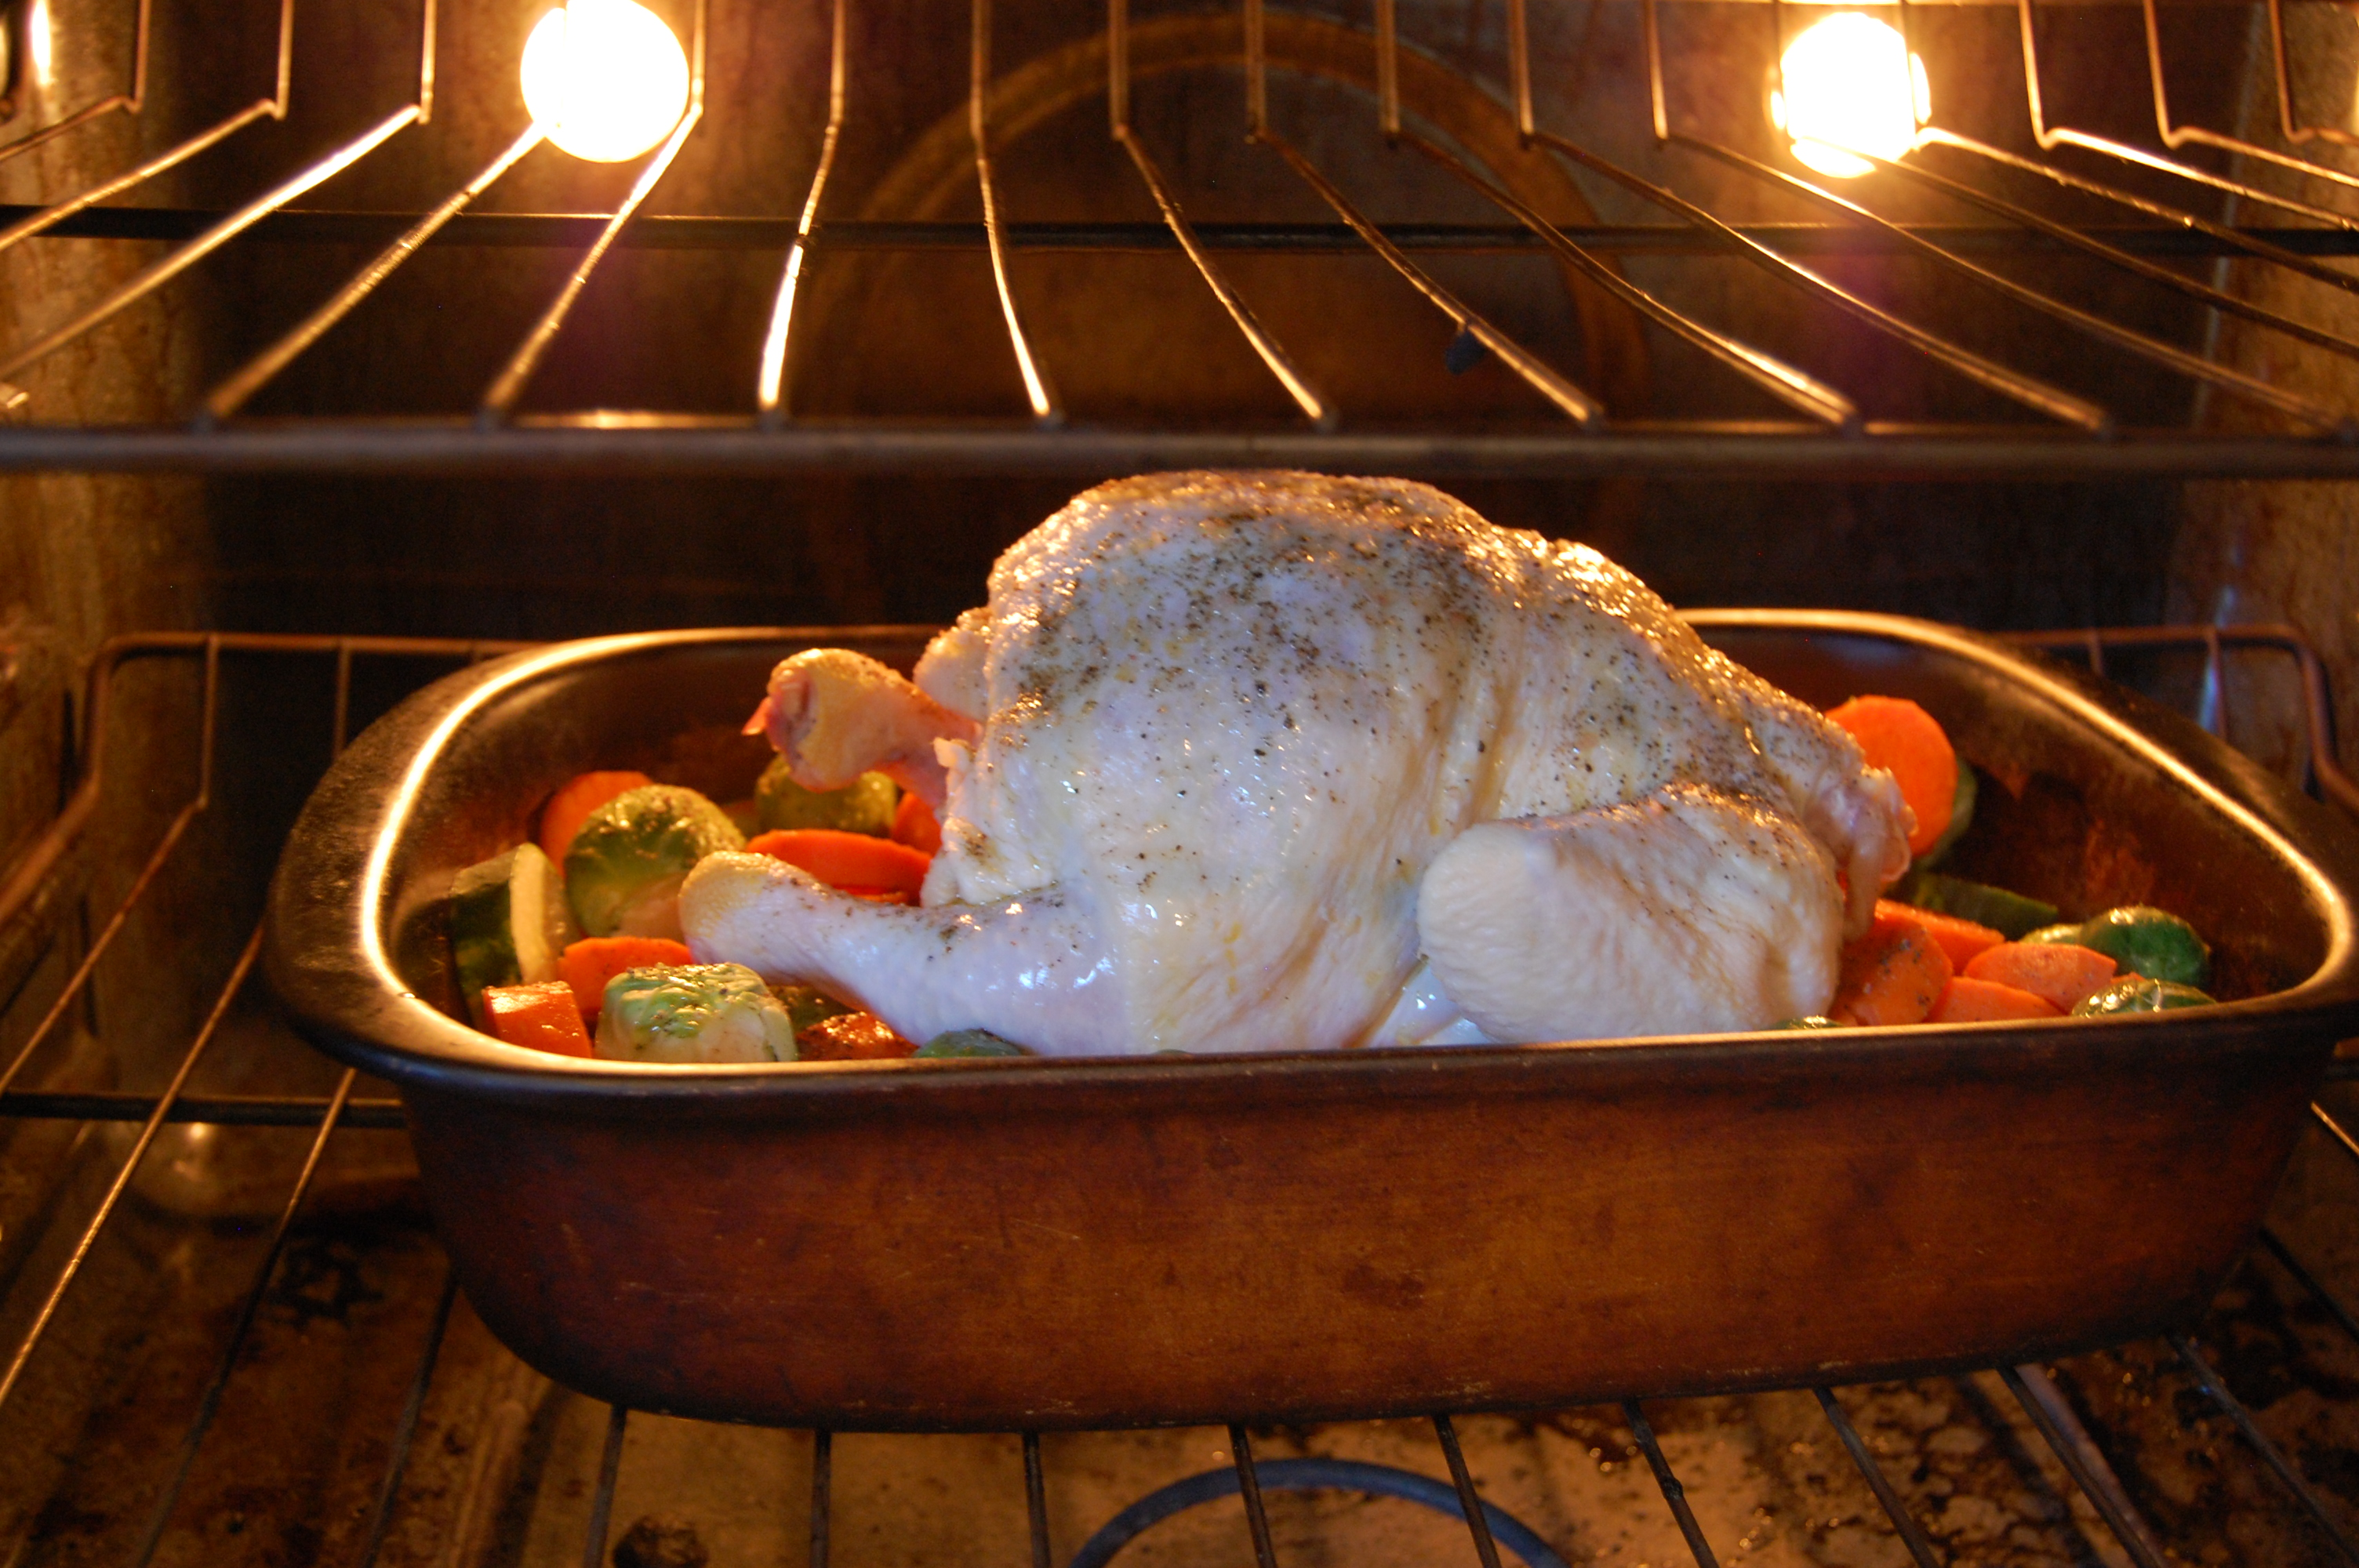 Roasted Chicken on Veggies